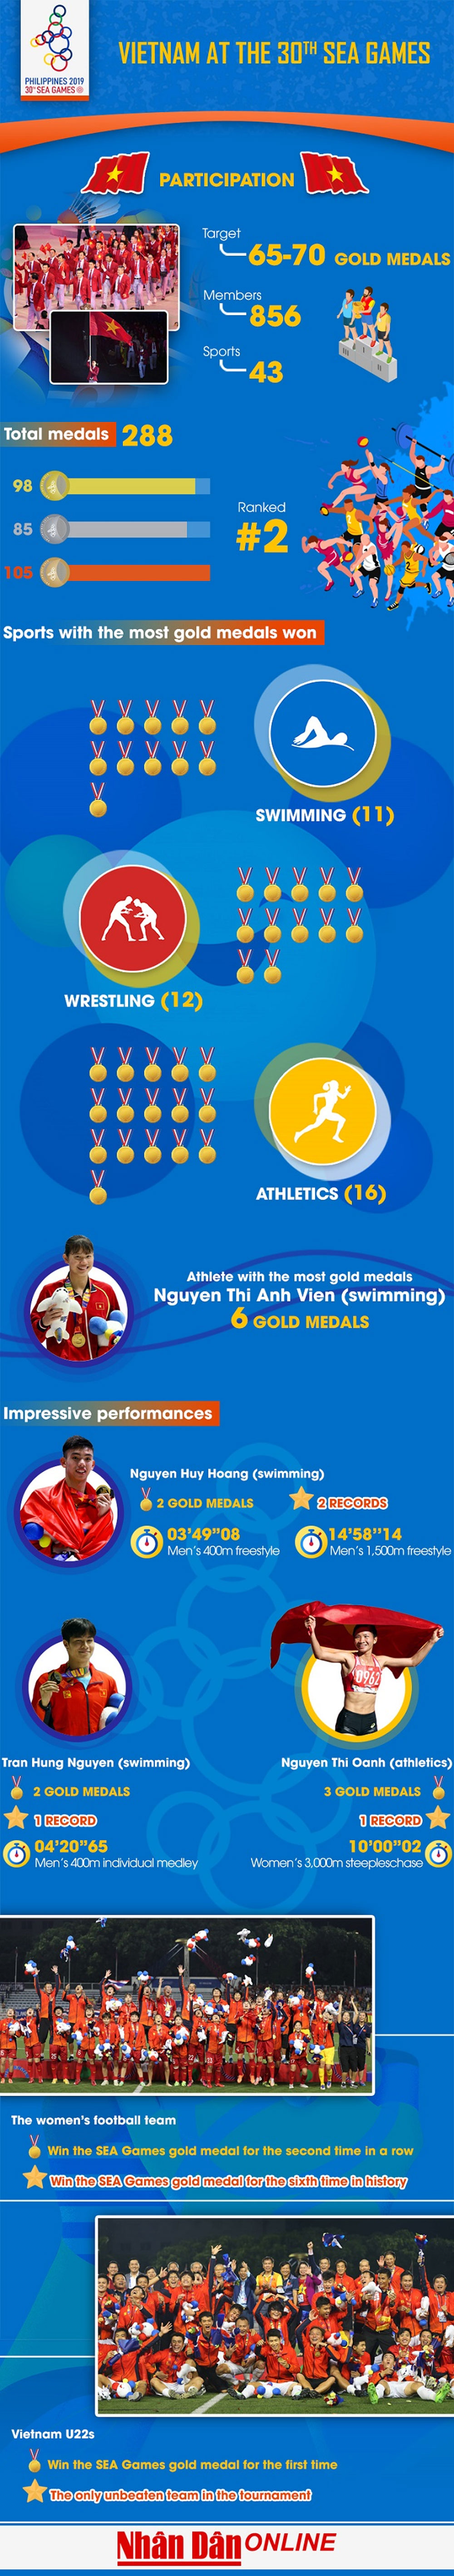 Vietnam, 30th SEA Games, bronze medals,  second place overall, top-three place, overall medal table